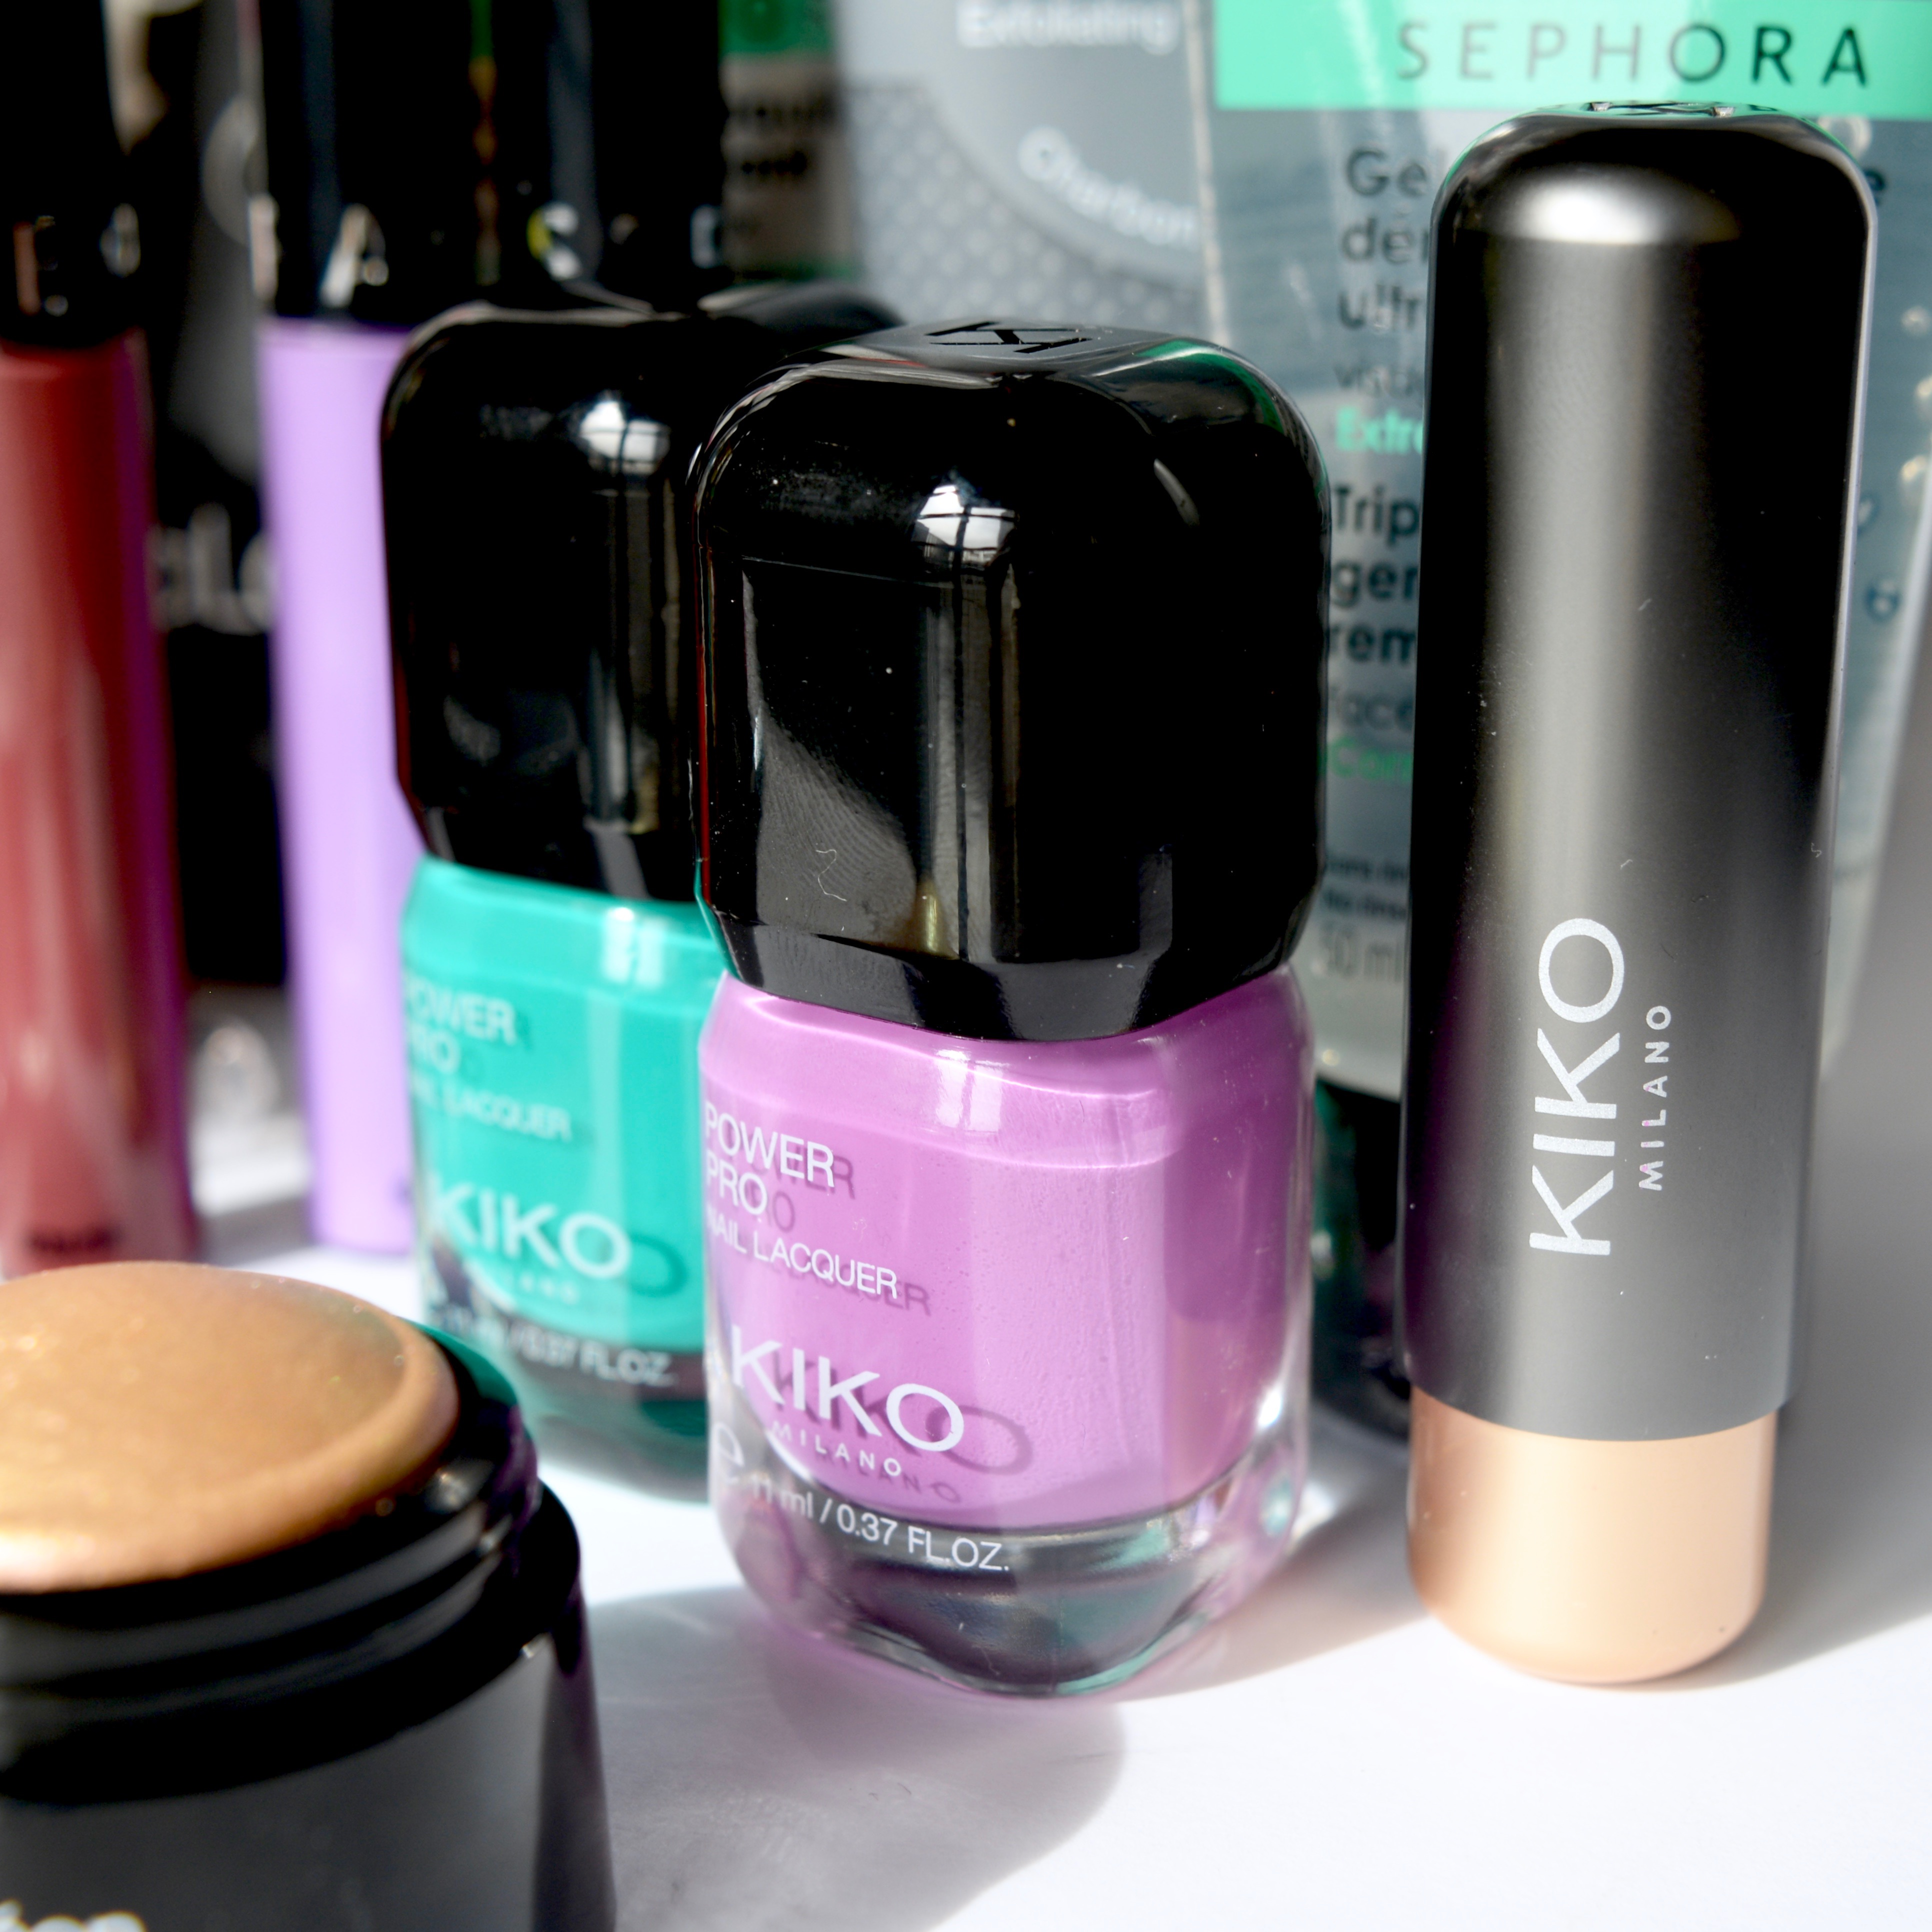 Kiko haul - these nail varnishes are perfect for spring